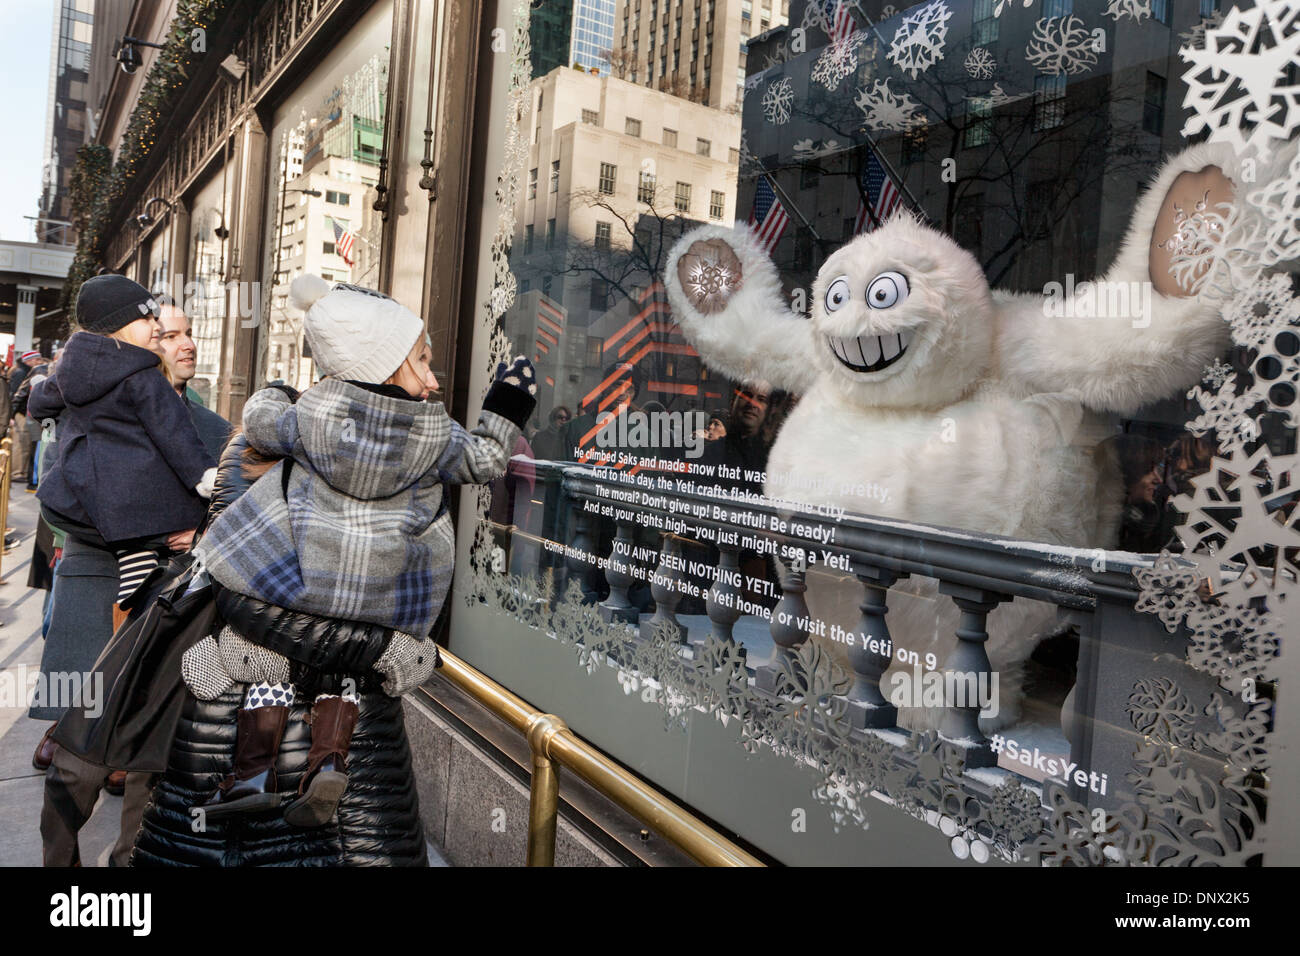 Children and parents marvel at Christmas windows, Saks Fifth Avenue, New York City. - Stock Image